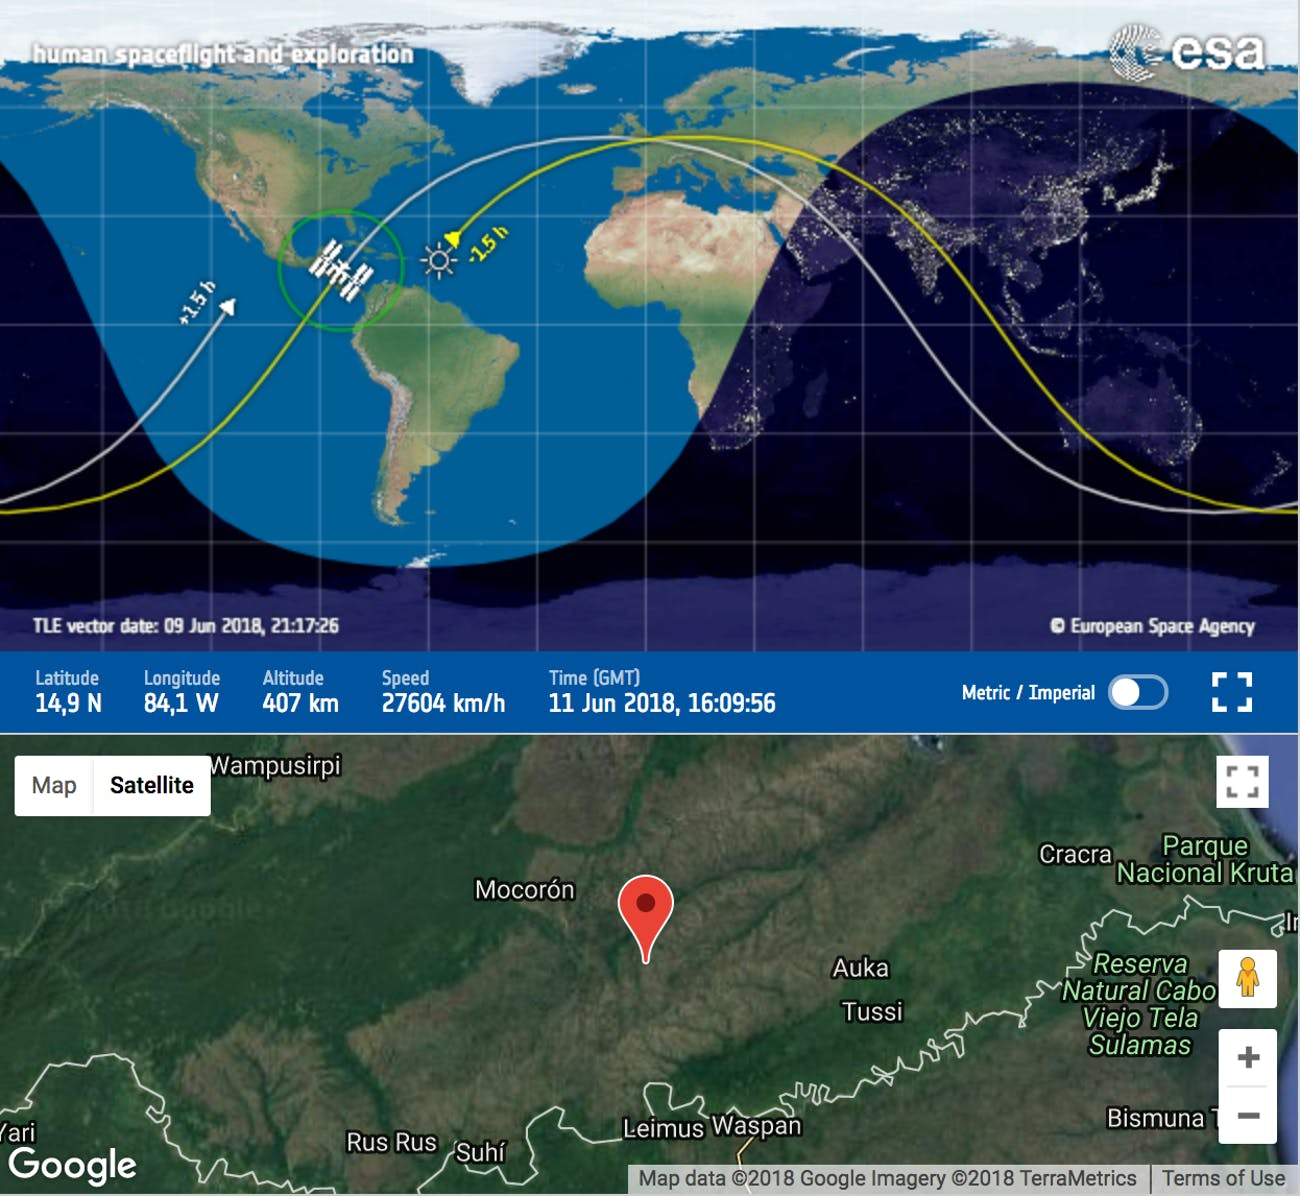 A screenshot of the ESA's space station tracker.